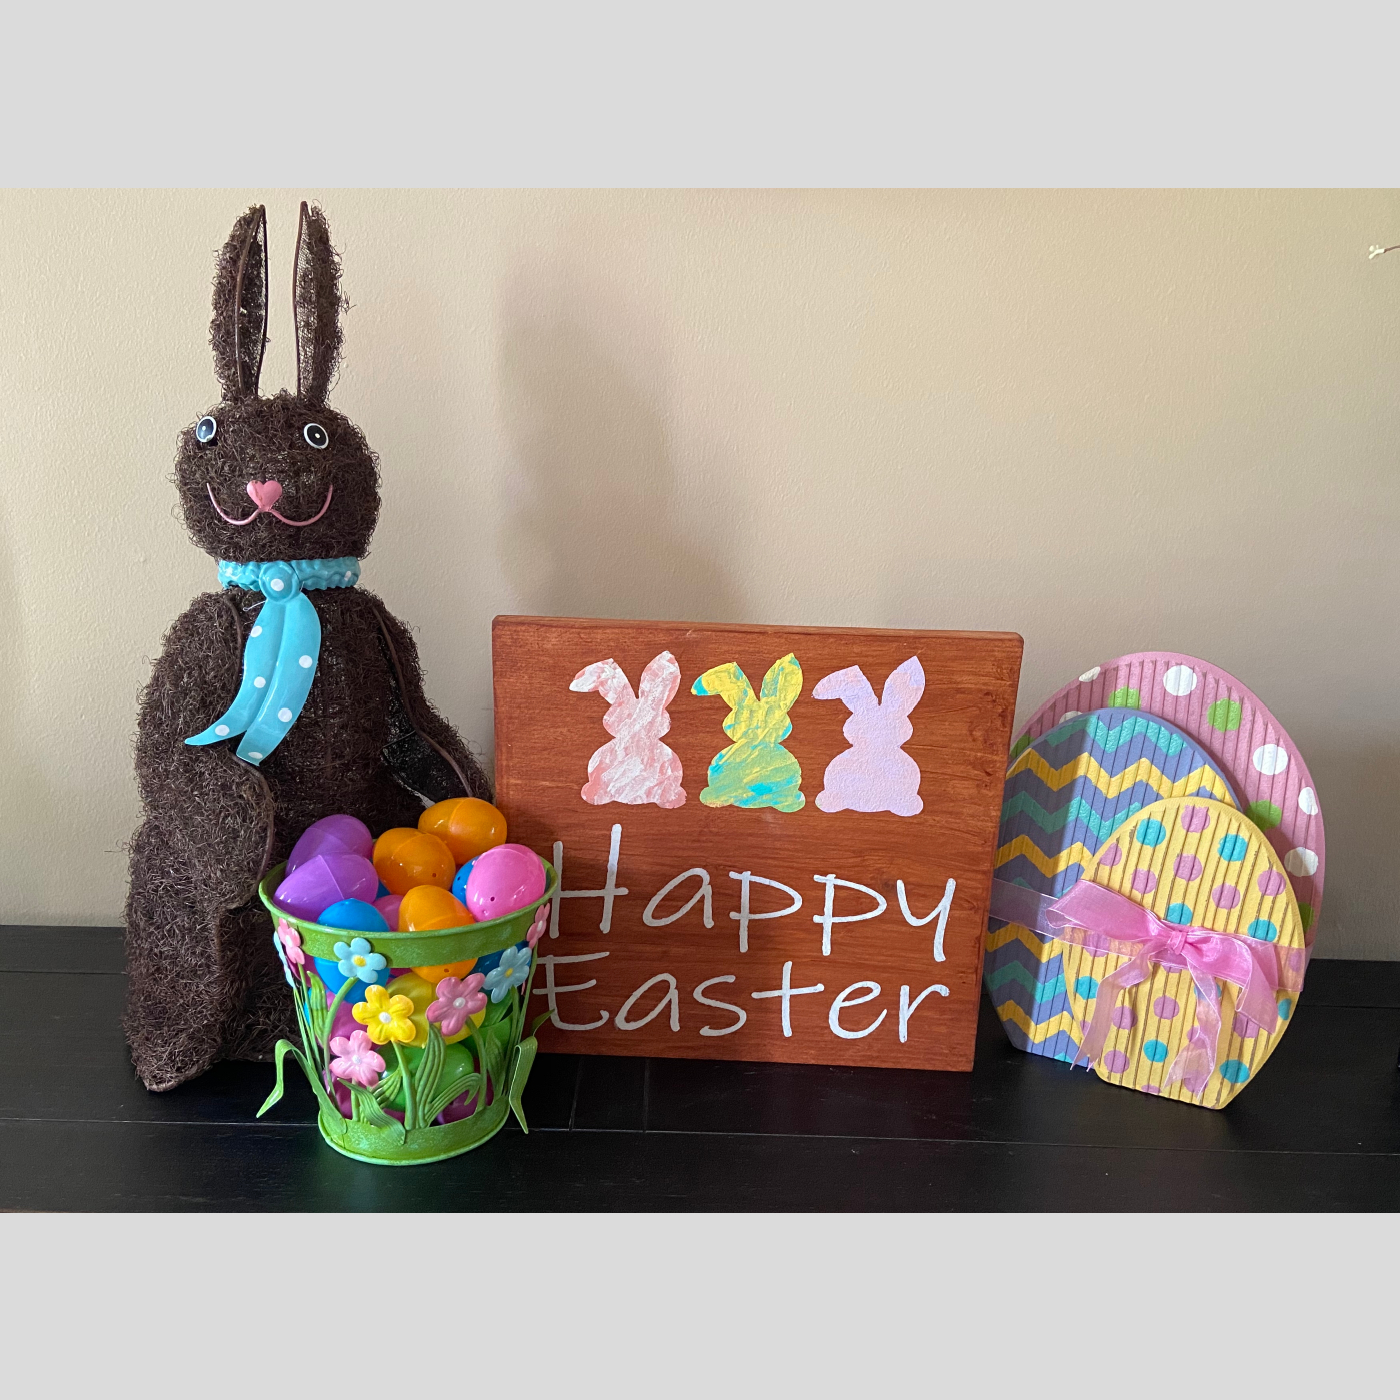 Happy Easter DIY wood sign